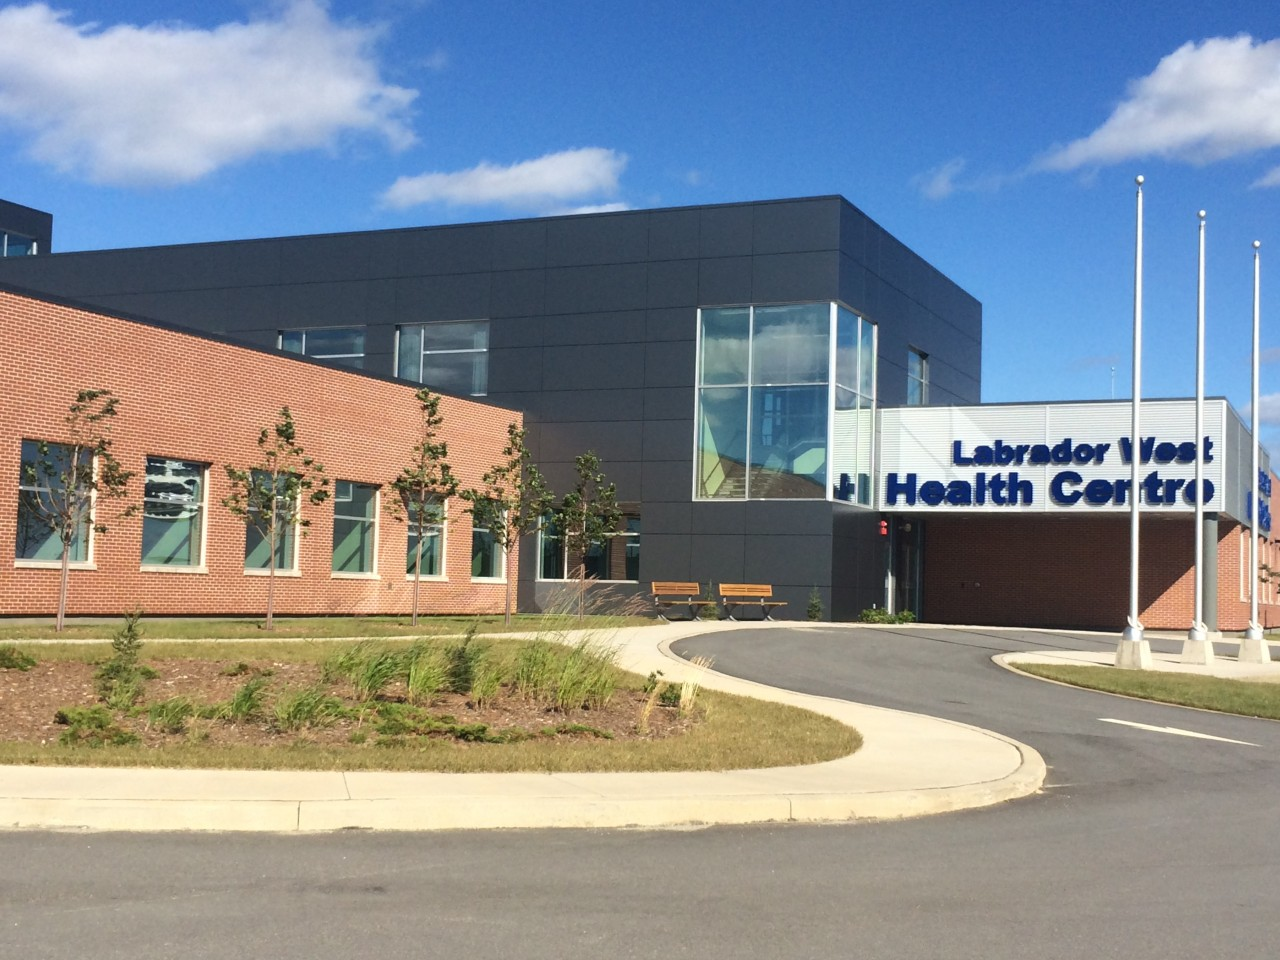 Labrador West Health Center is protected by Contego fire retardant latex